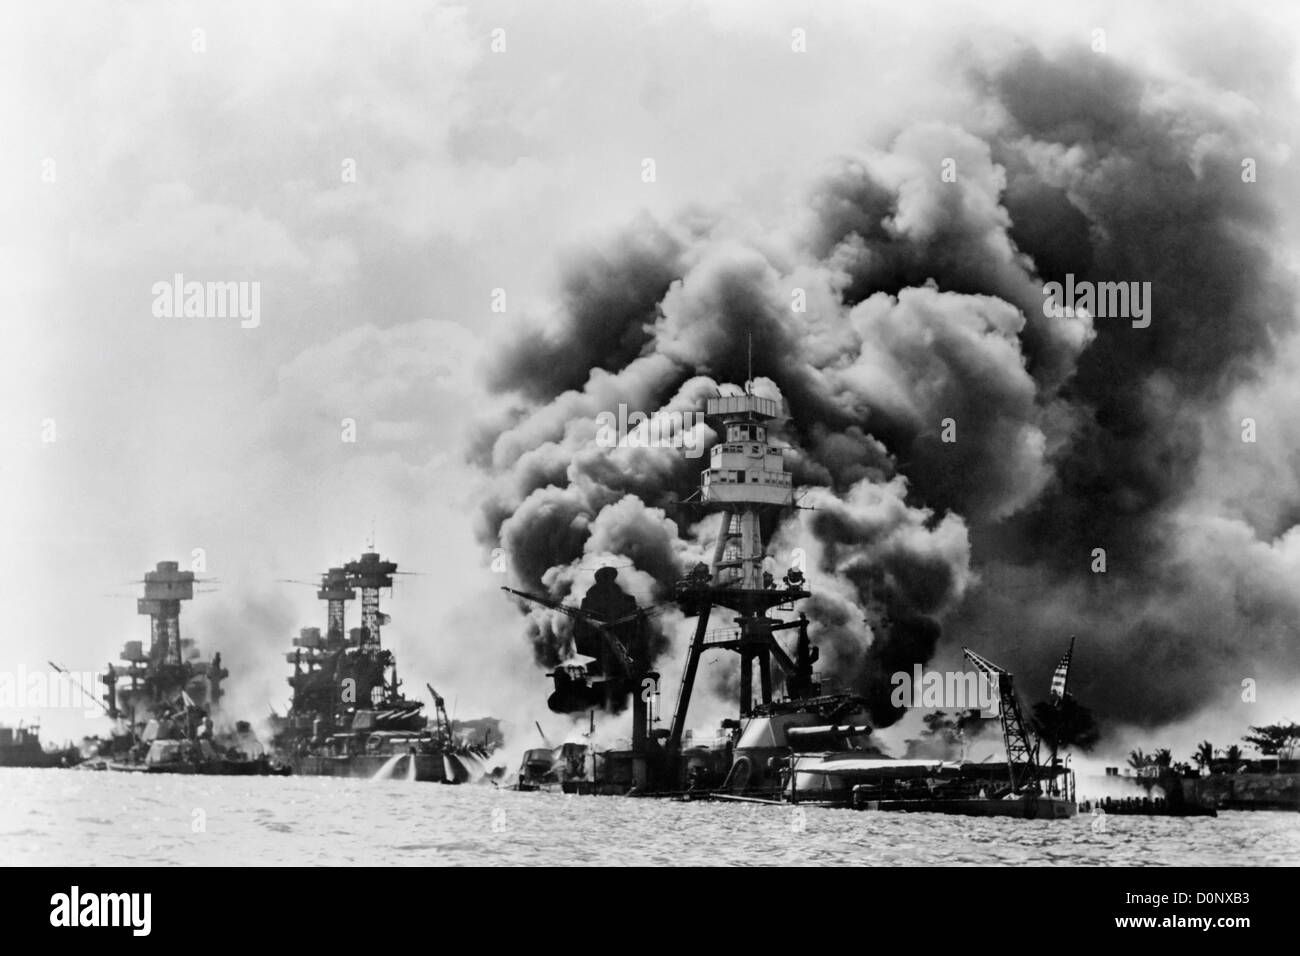 Three Battleships After Pearl Harbor Bombing Stock Photo